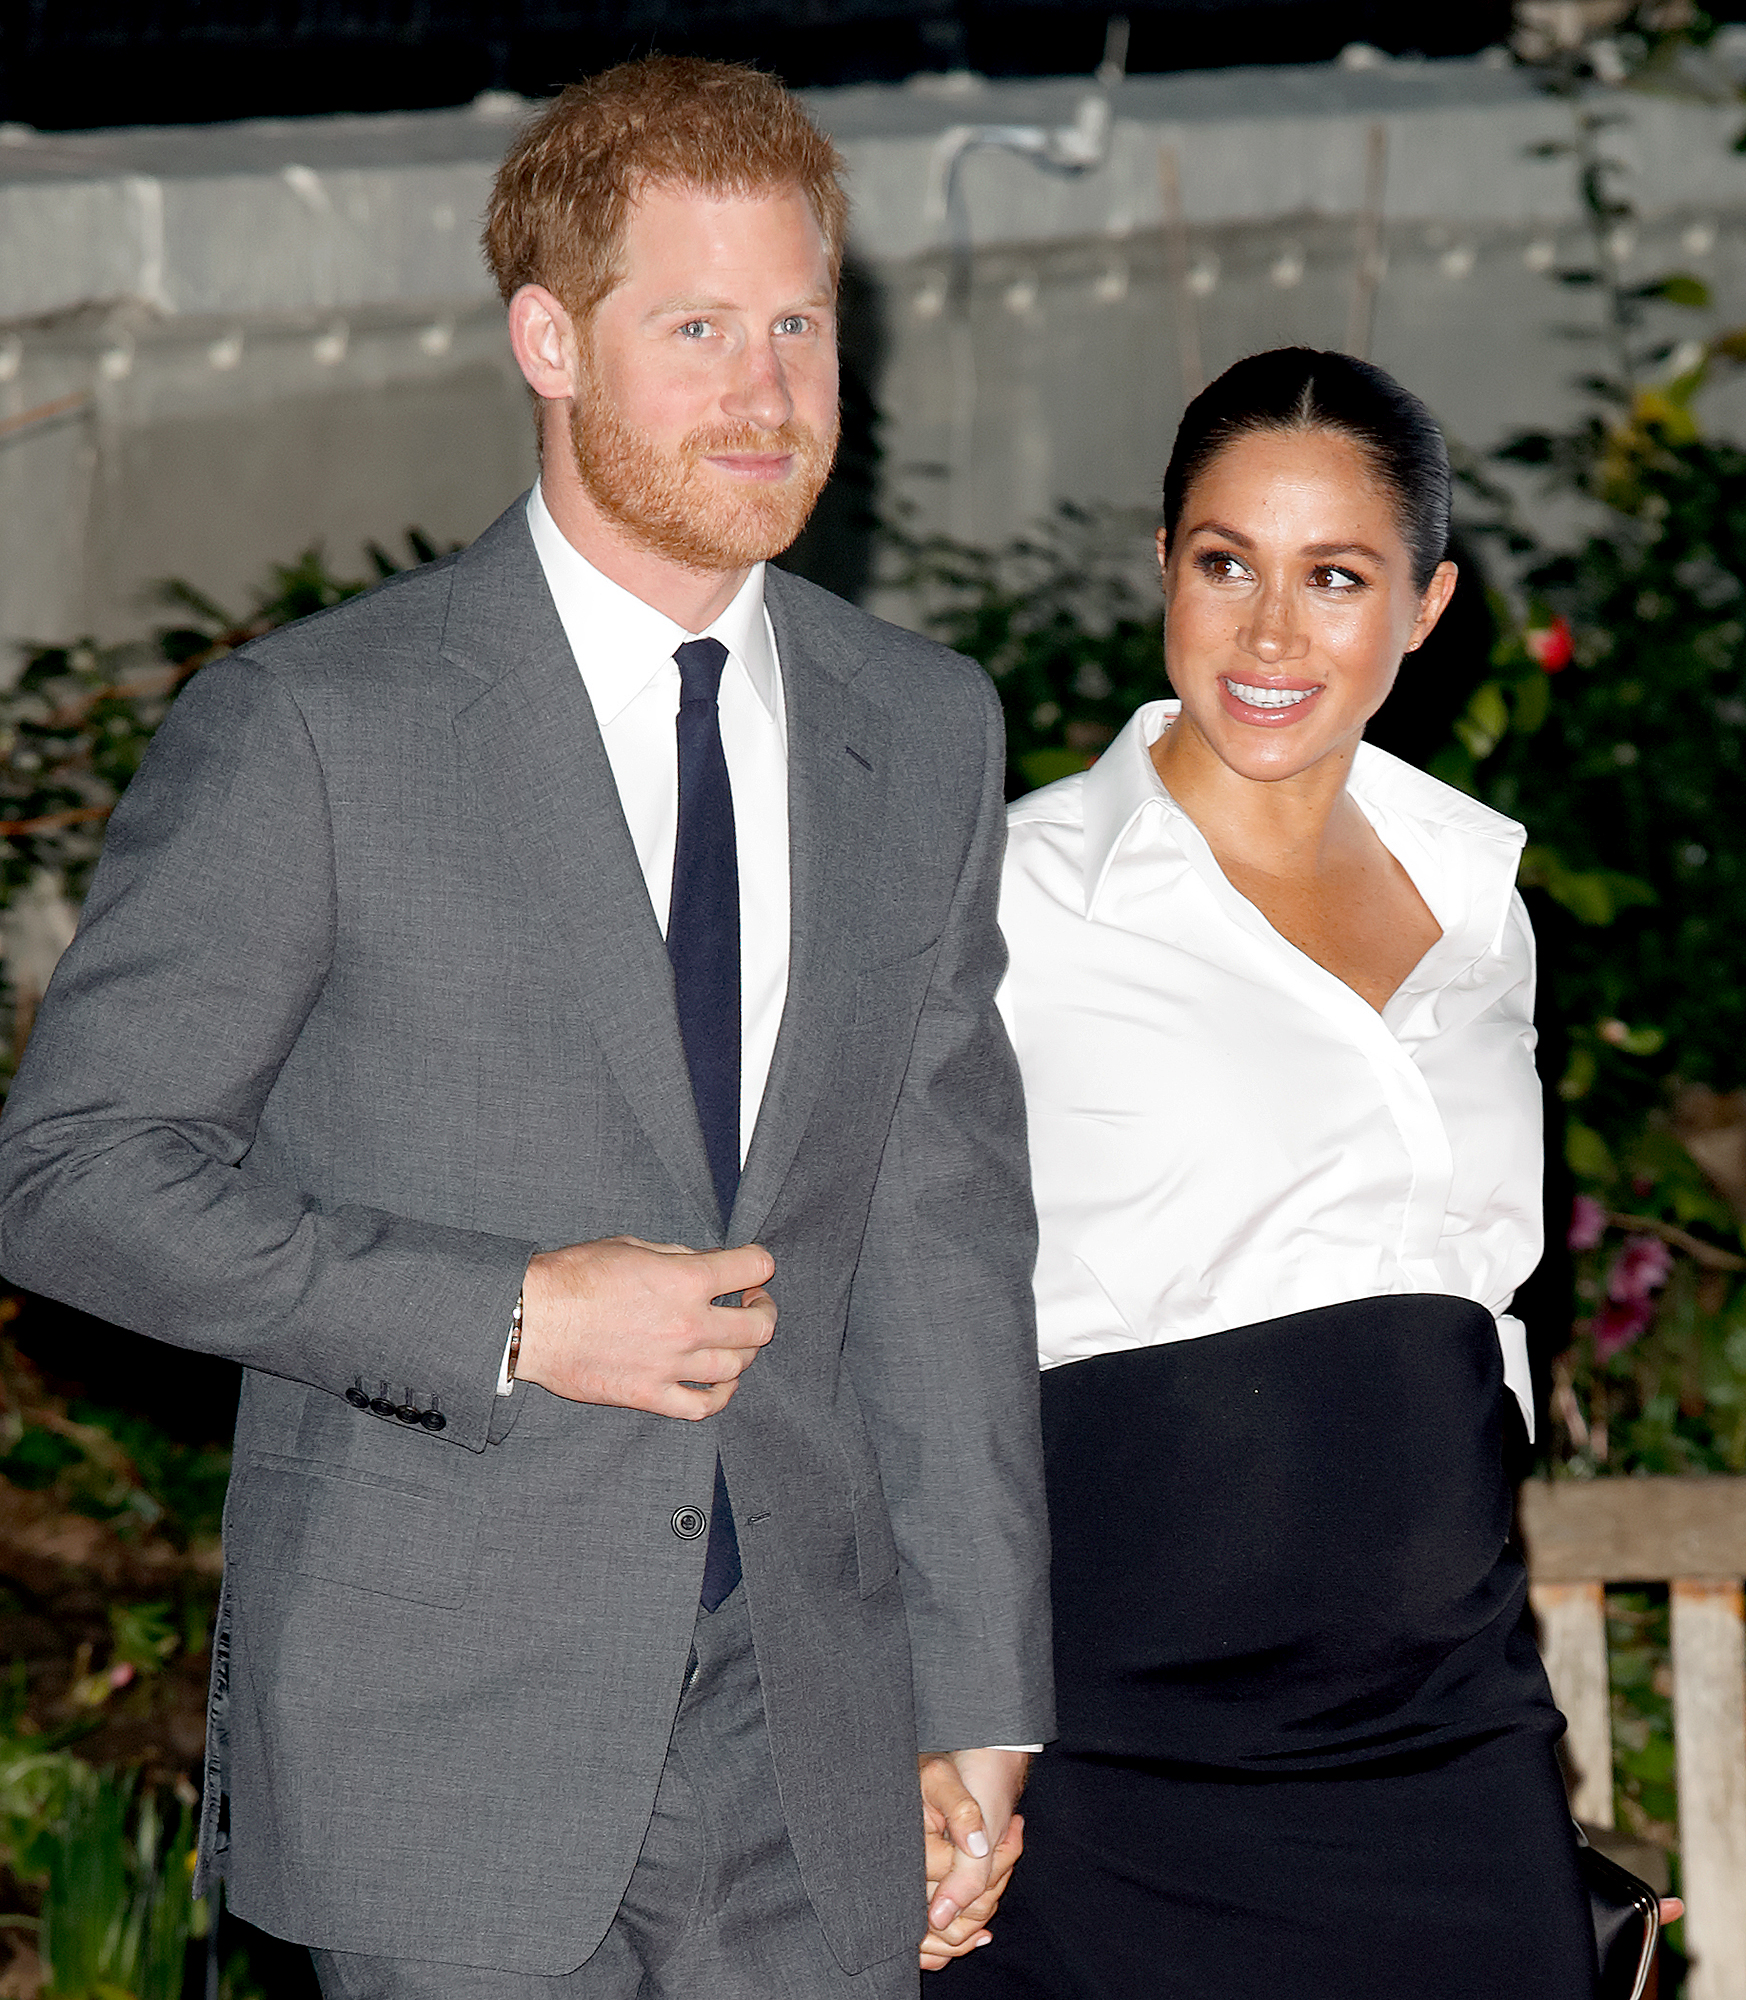 Bookmakers 'Convinced' Meghan, Harry's Royal Baby Already